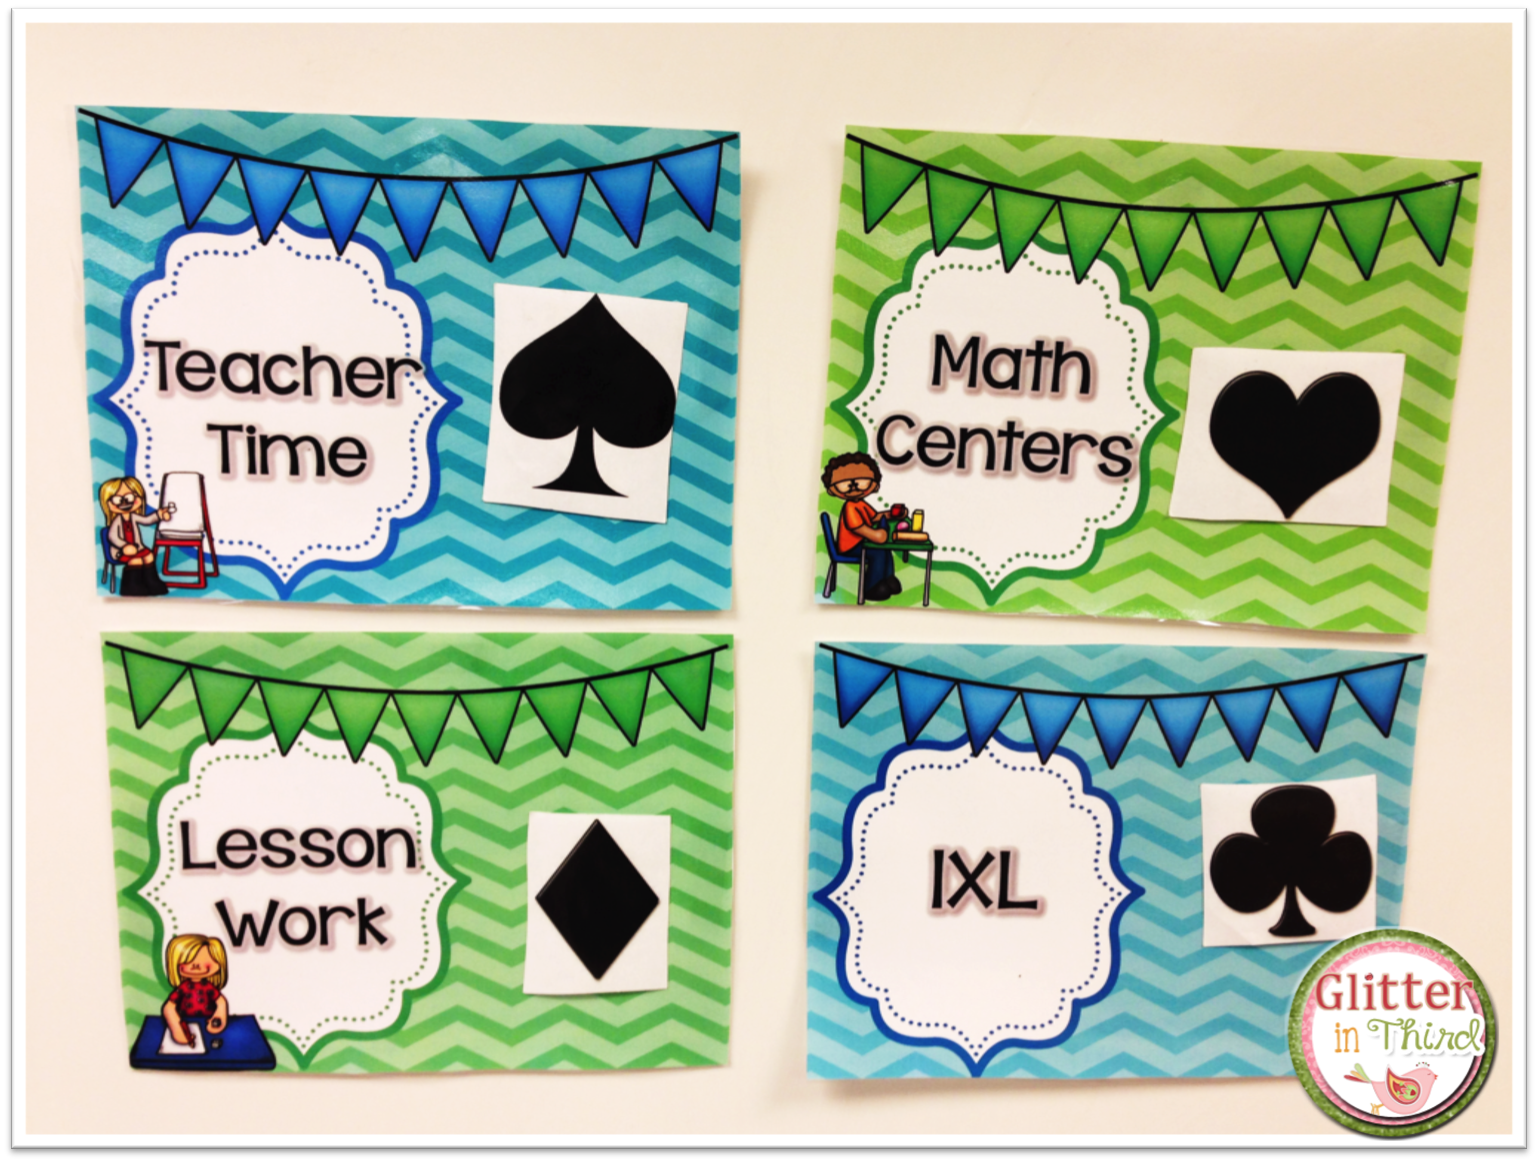 Glitter in Third: How I use math stations in my classroom